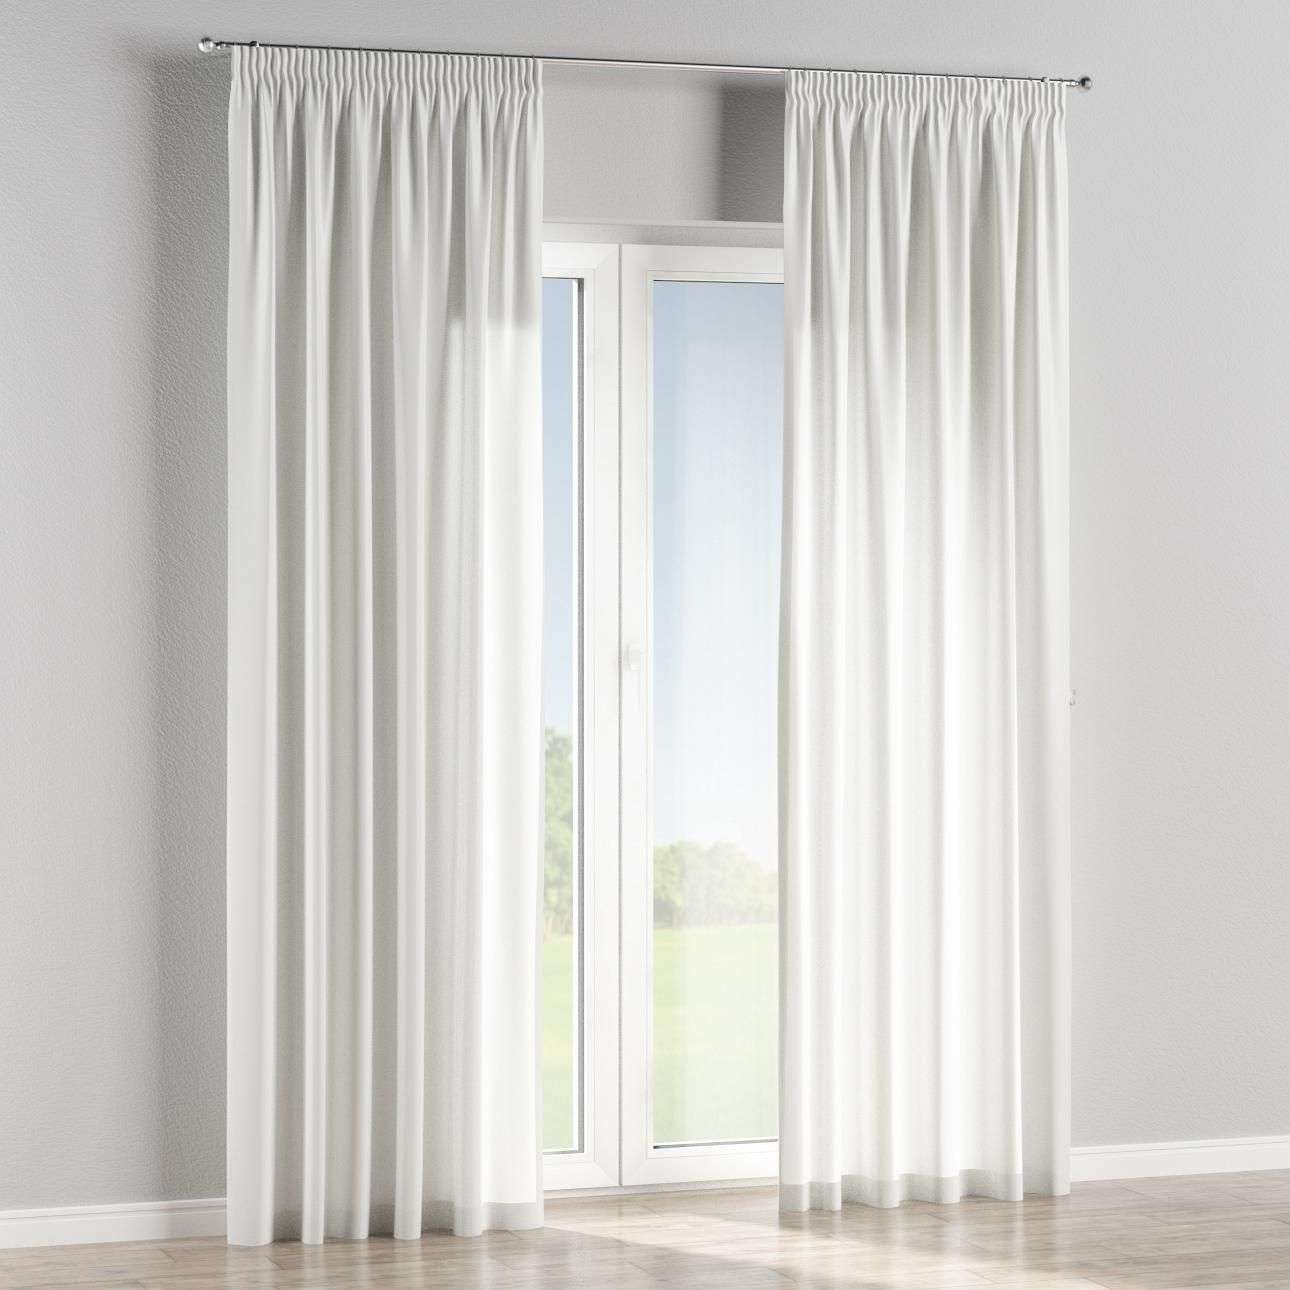 Pencil pleat curtains in collection Marina, fabric: 140-62